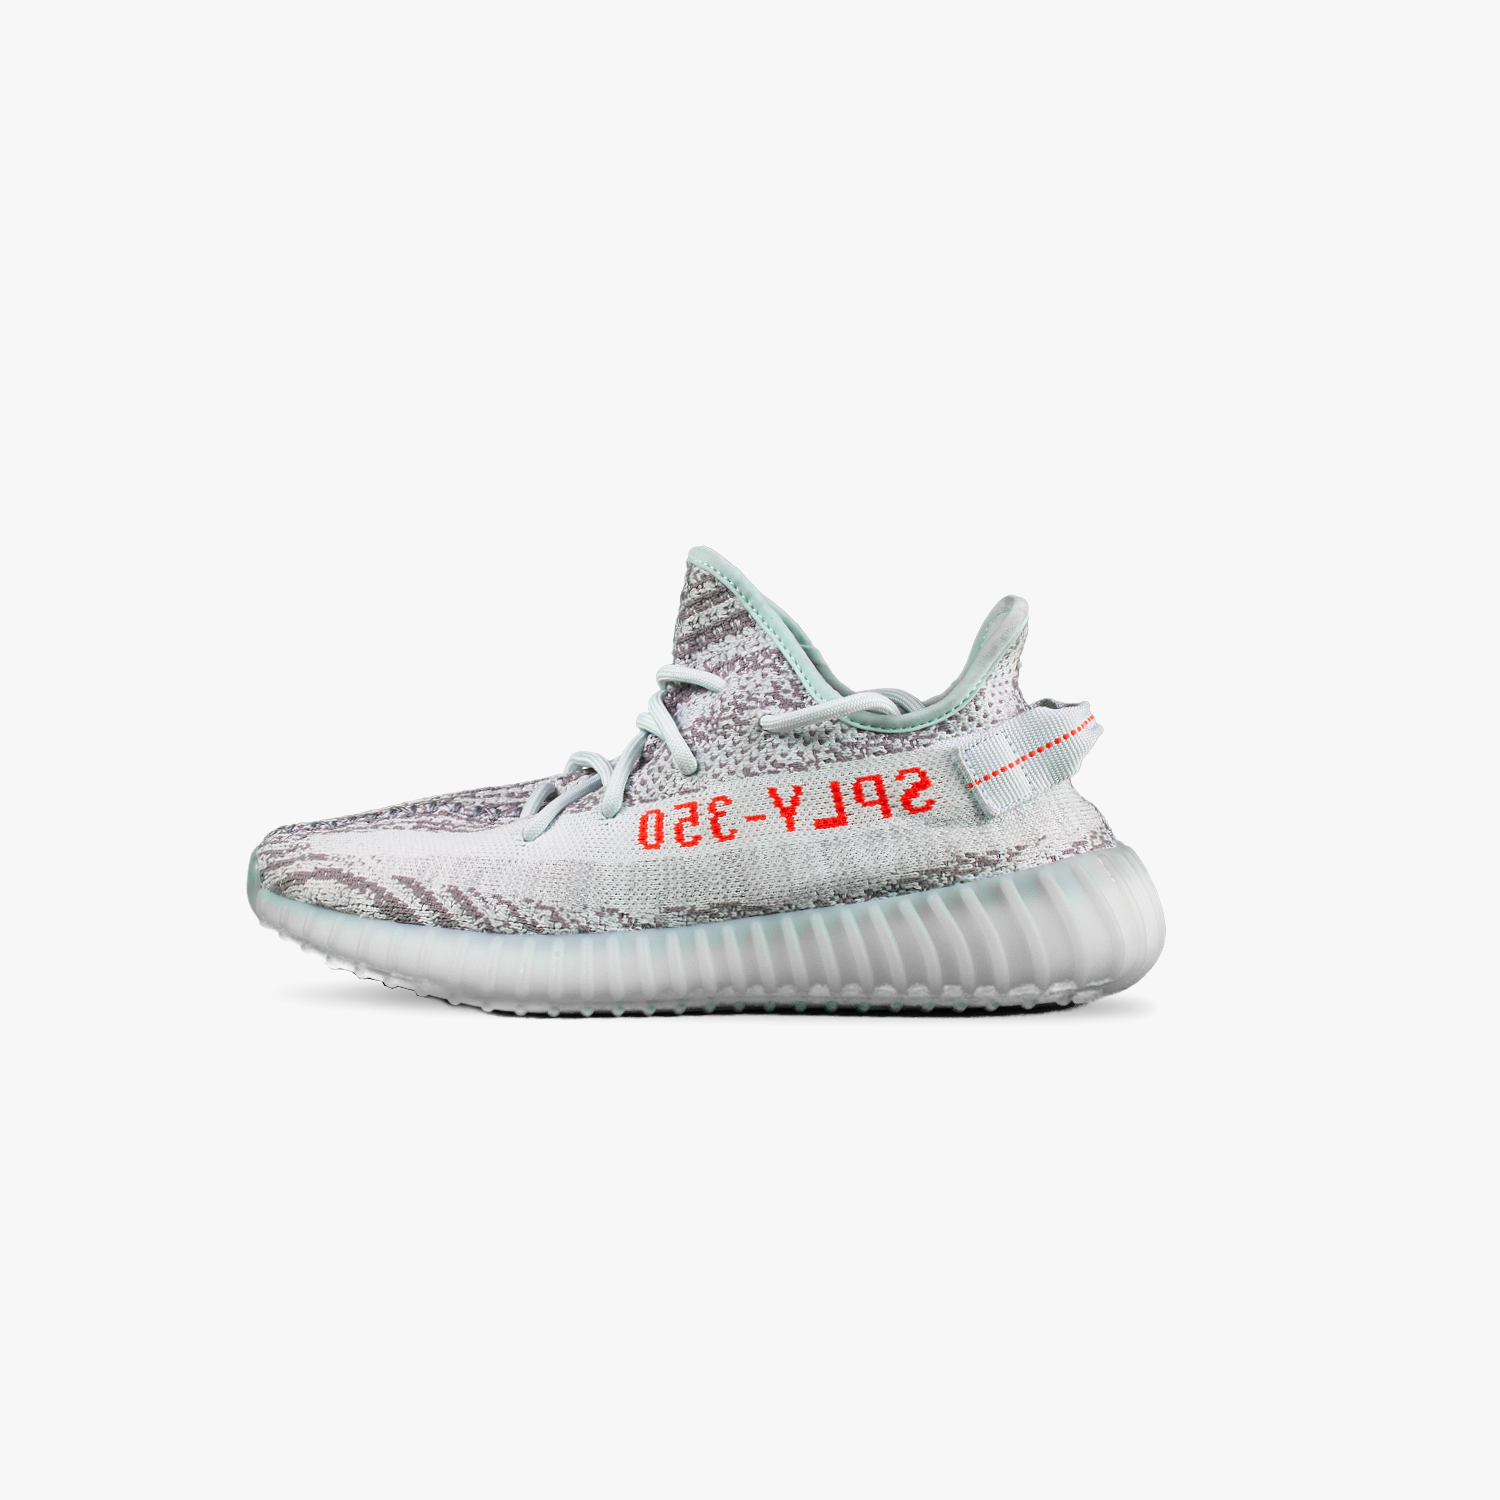 "the latest 8b7be 04863 Adidas Yeezy Boost 350 V2 ""Blue Tint"""